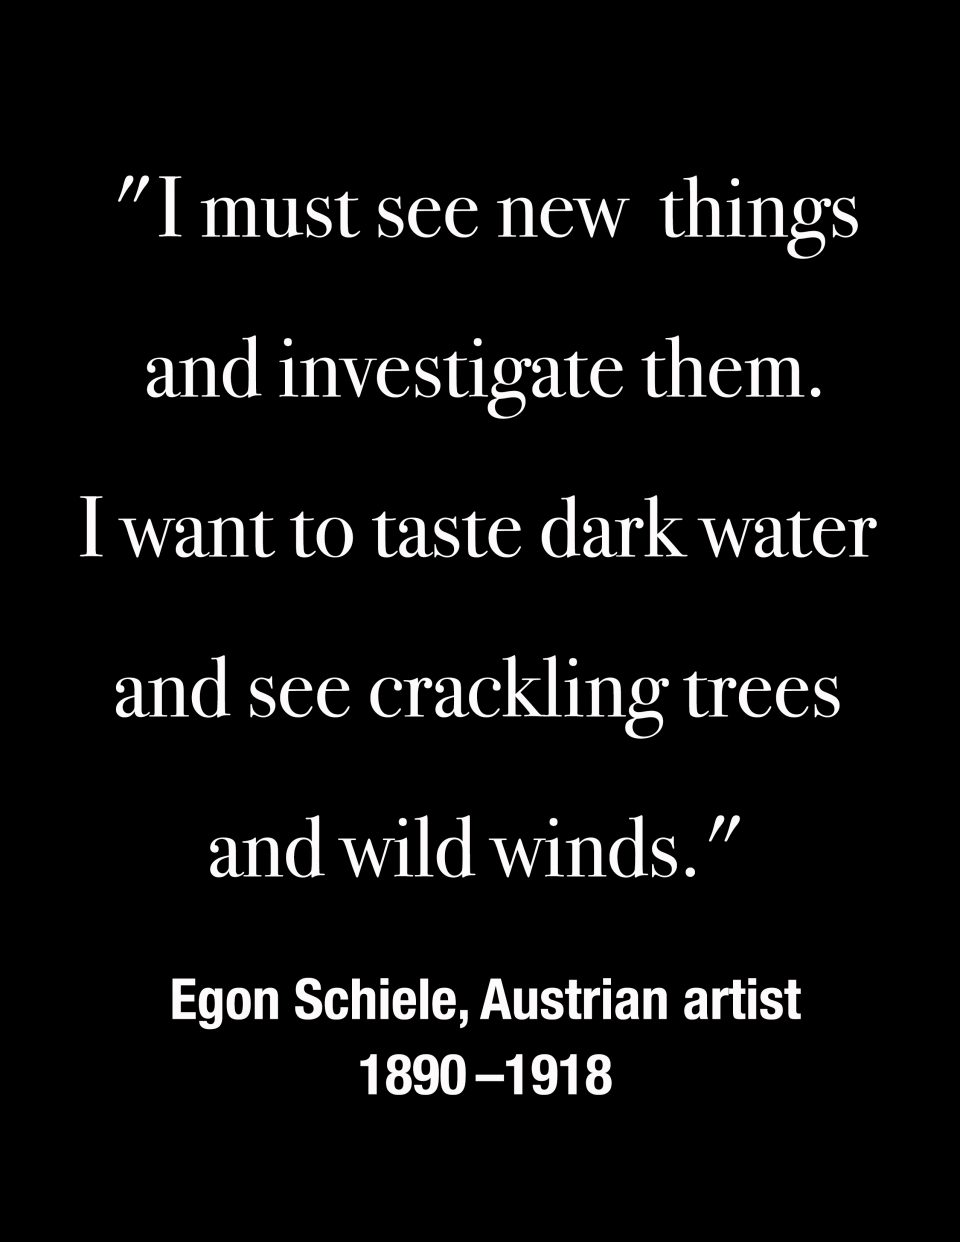 """I must see new things and investigate them. I want to taste dark water and see crackling trees and wild winds."" -- Egon Schiele, Austrian artist 1890 - 1918"